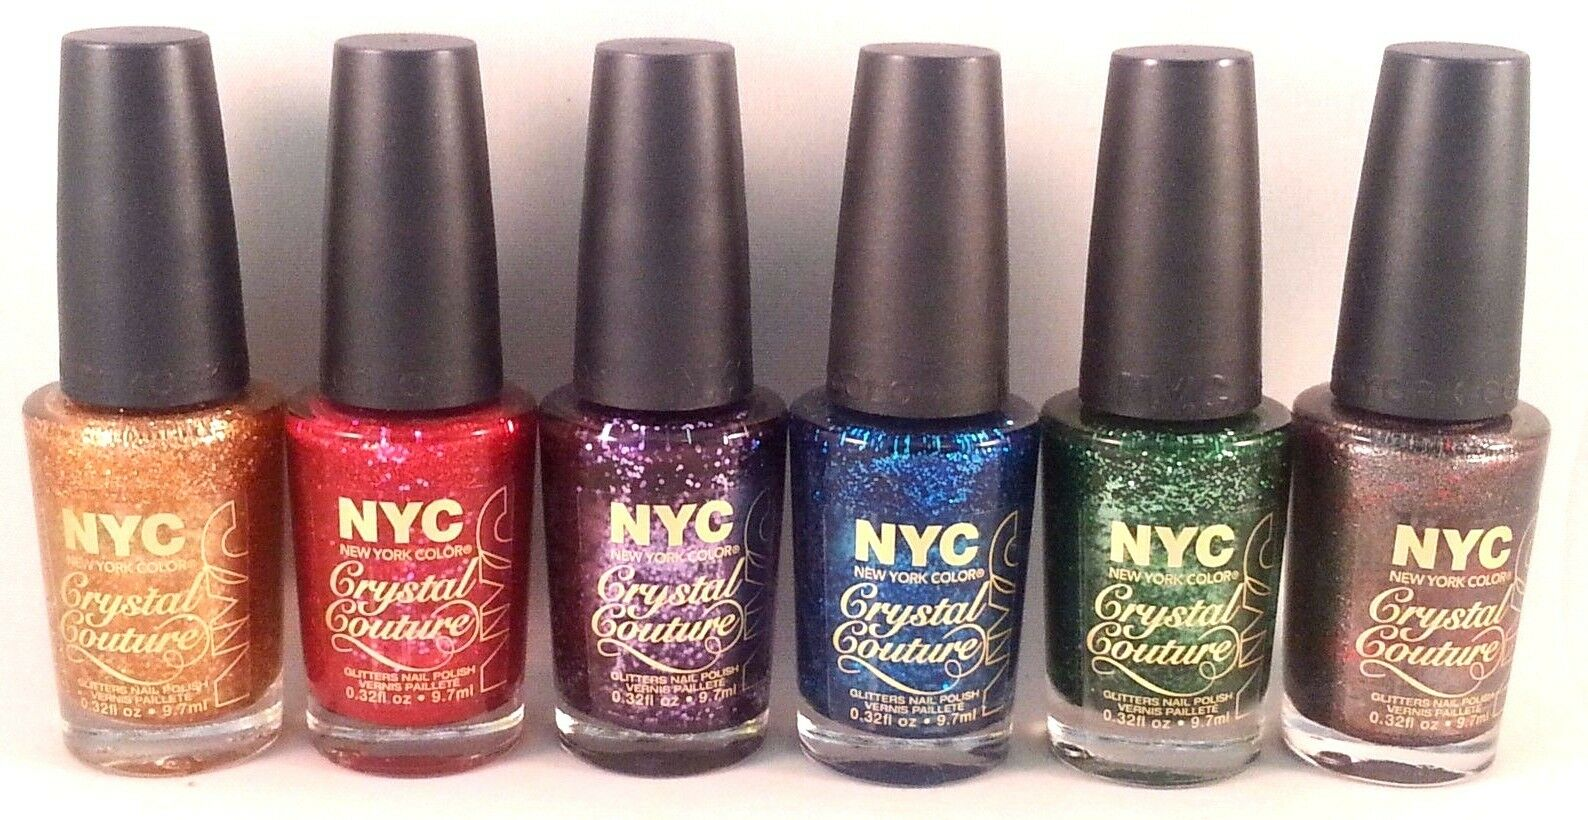 2 NYC in a Minute Nail Polish Quik Dry 258 Prospect Park Pink | eBay